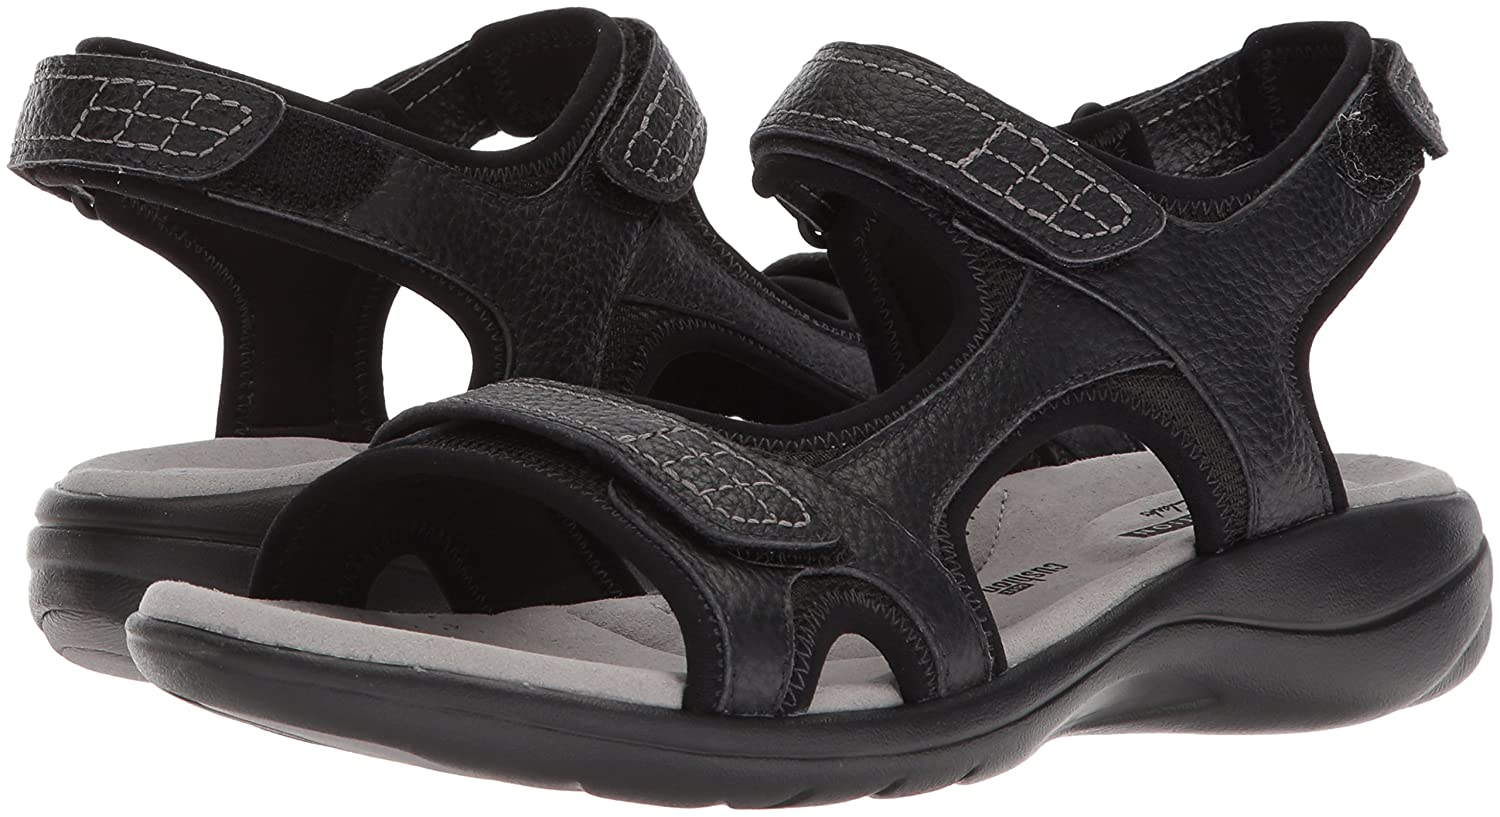 CLARKS Women's Saylie Jade Sandal B074CLMJPP 12 W US|Black Tumbled Leather